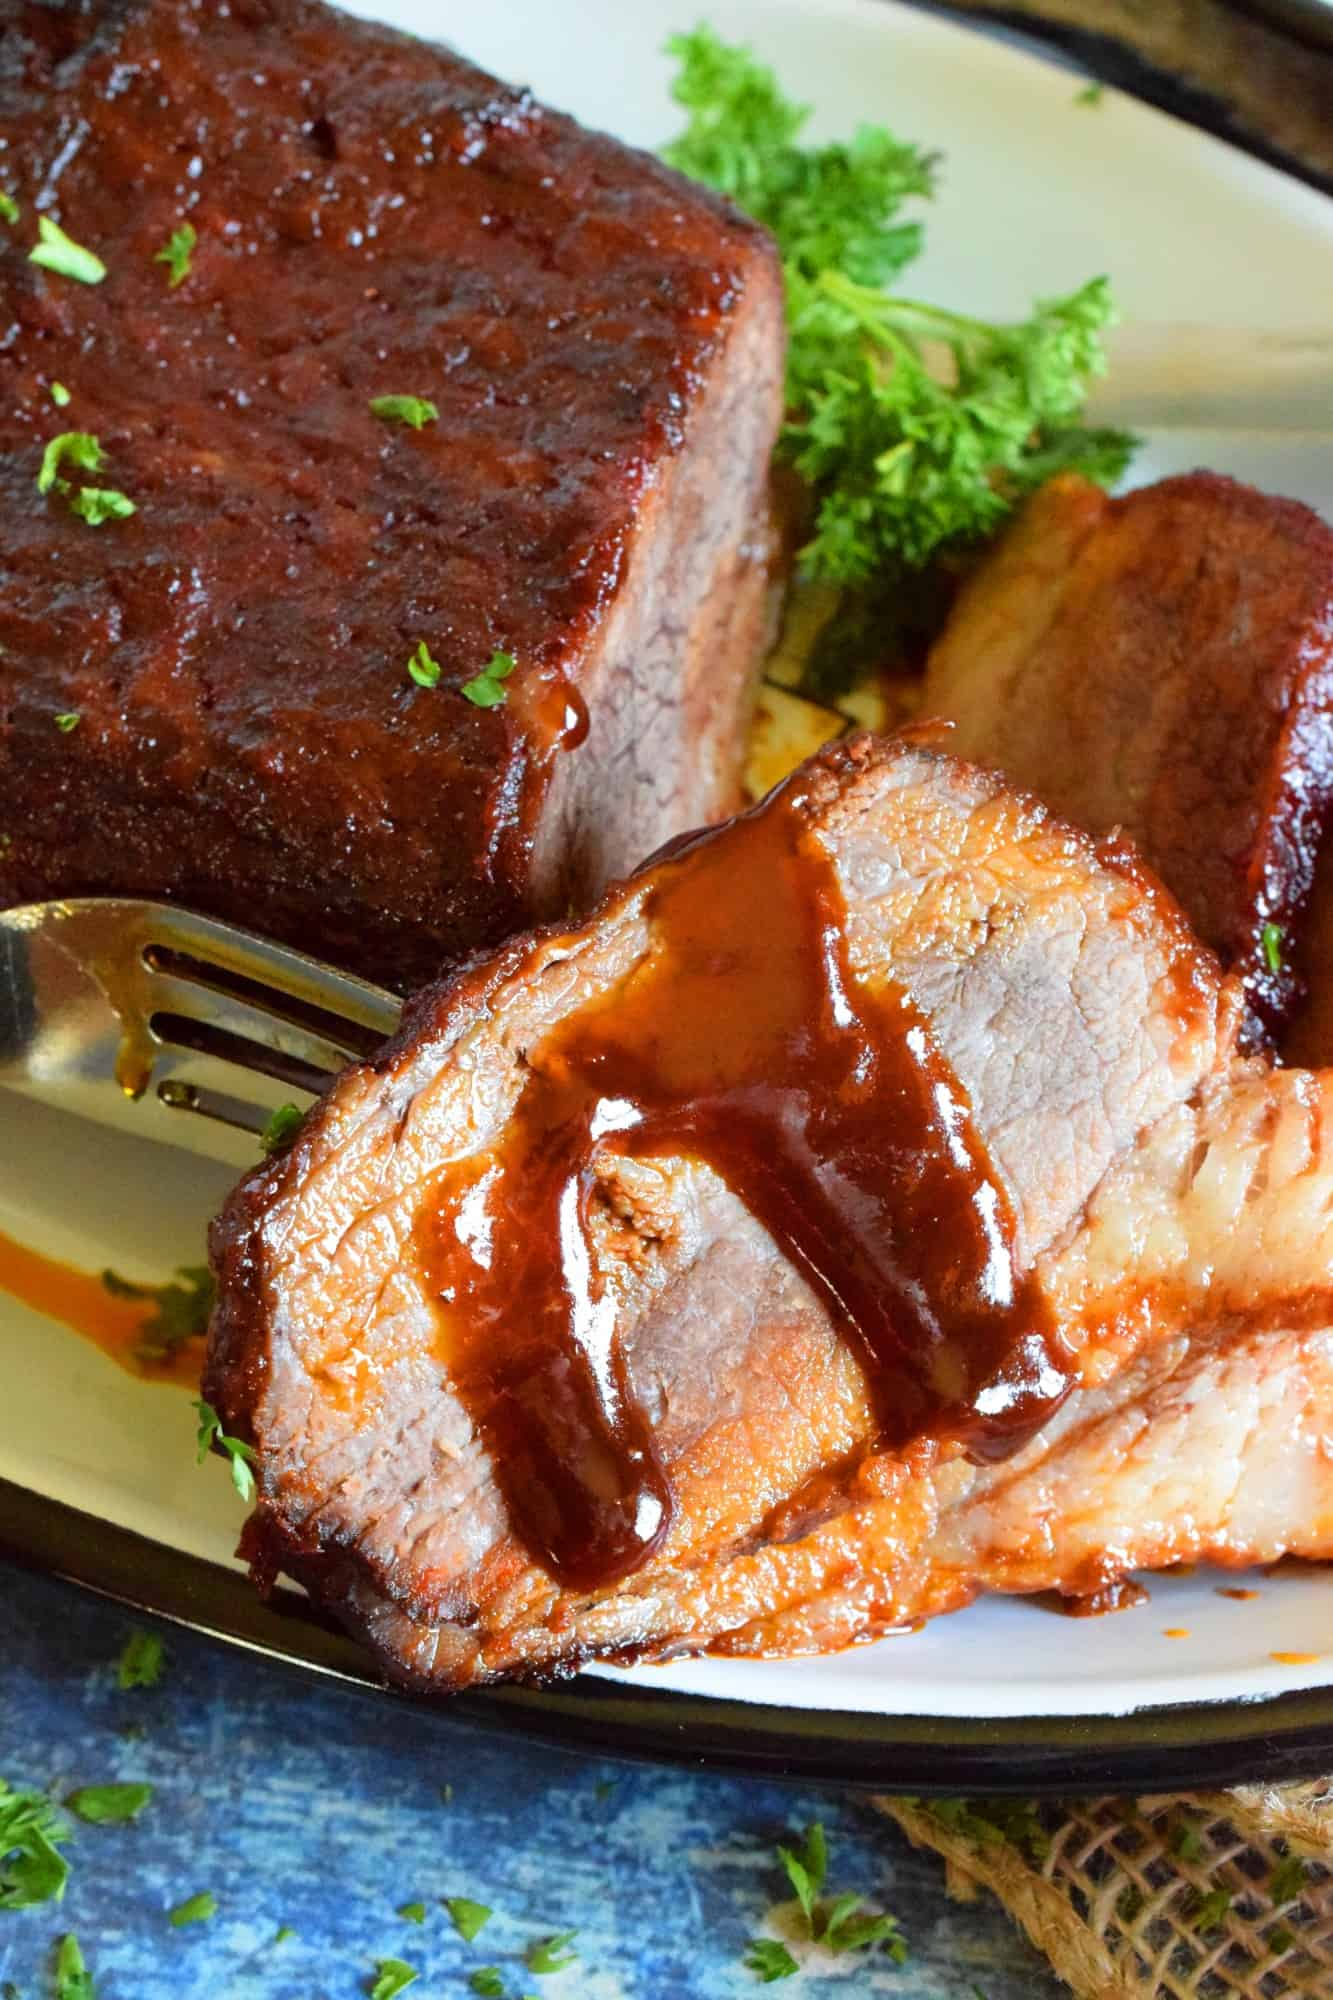 Oven Baked Barbecue Brisket